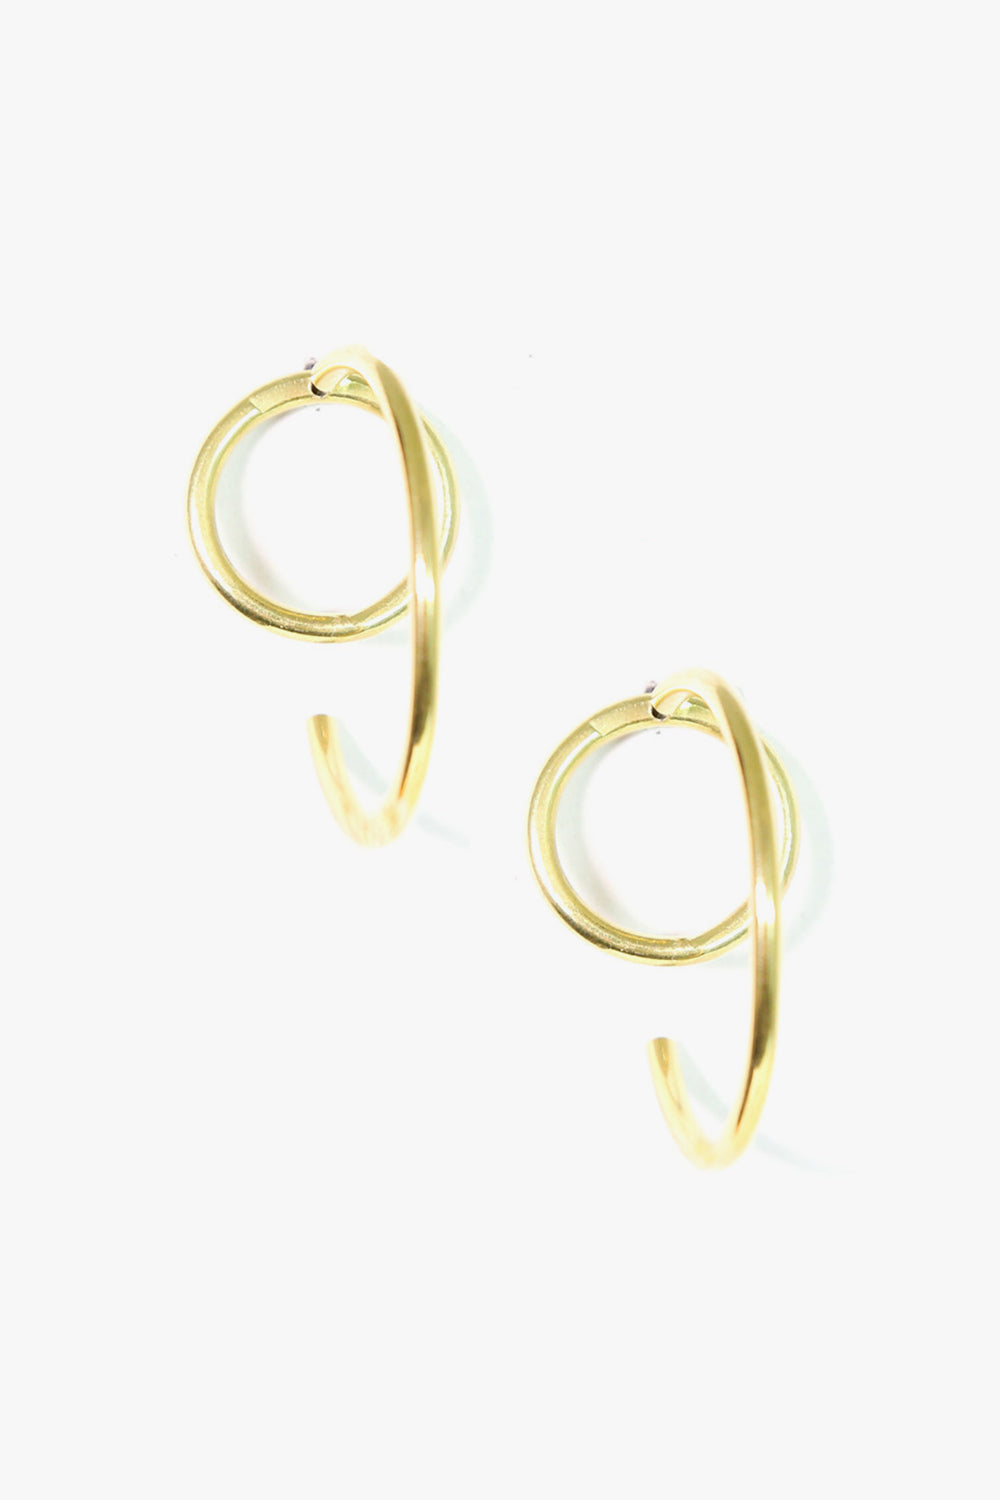 SOKO Globe Jacket Earrings - Primary New York